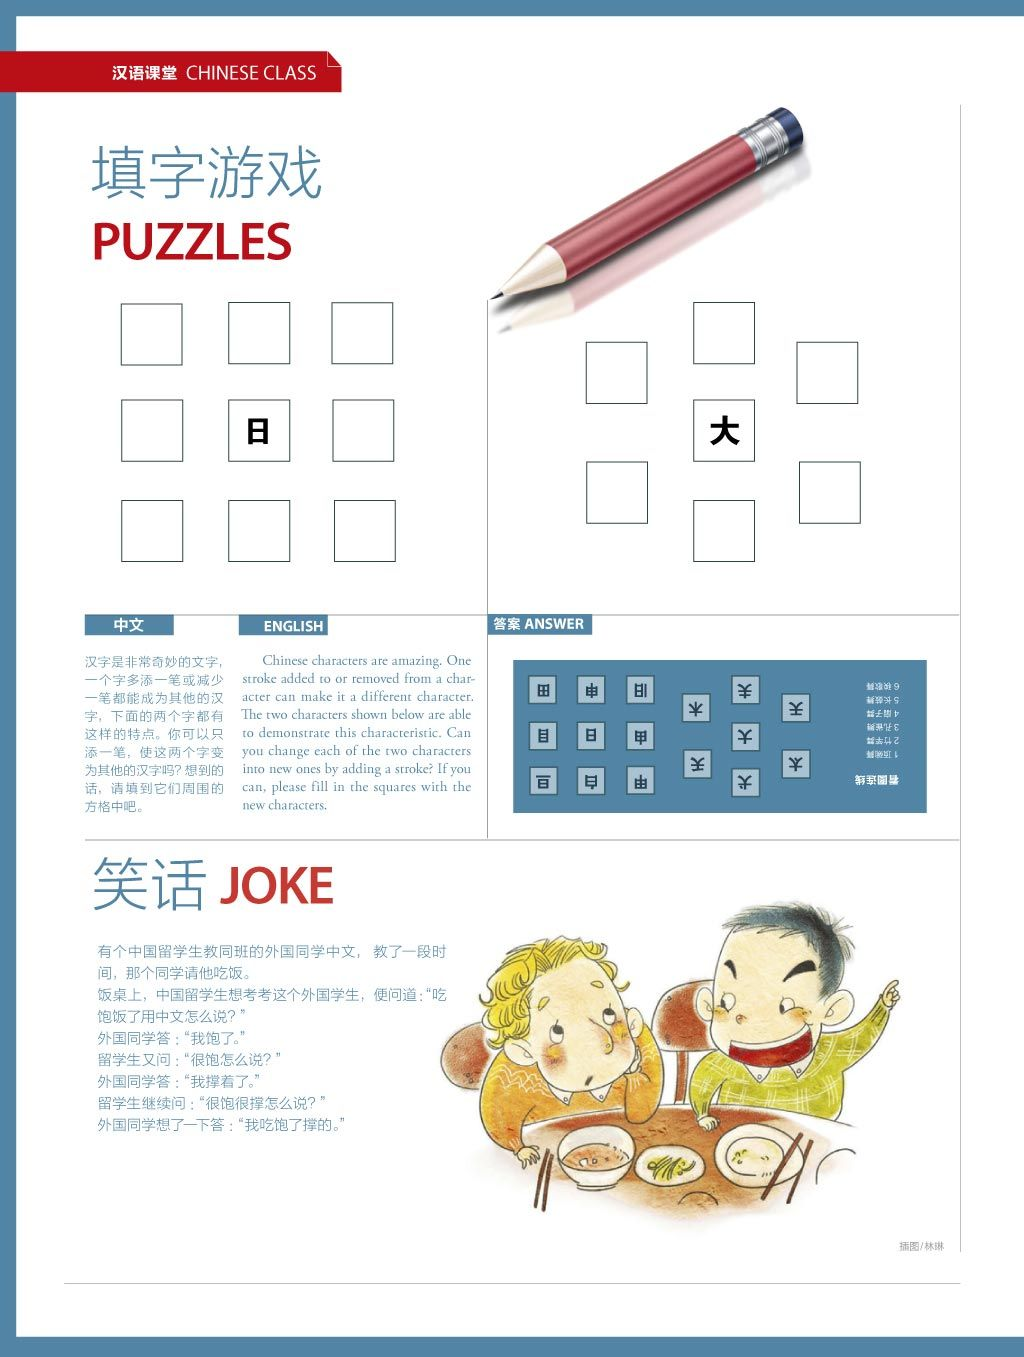 Chinese class 27 puzzles joke buzzwords confuciusmag